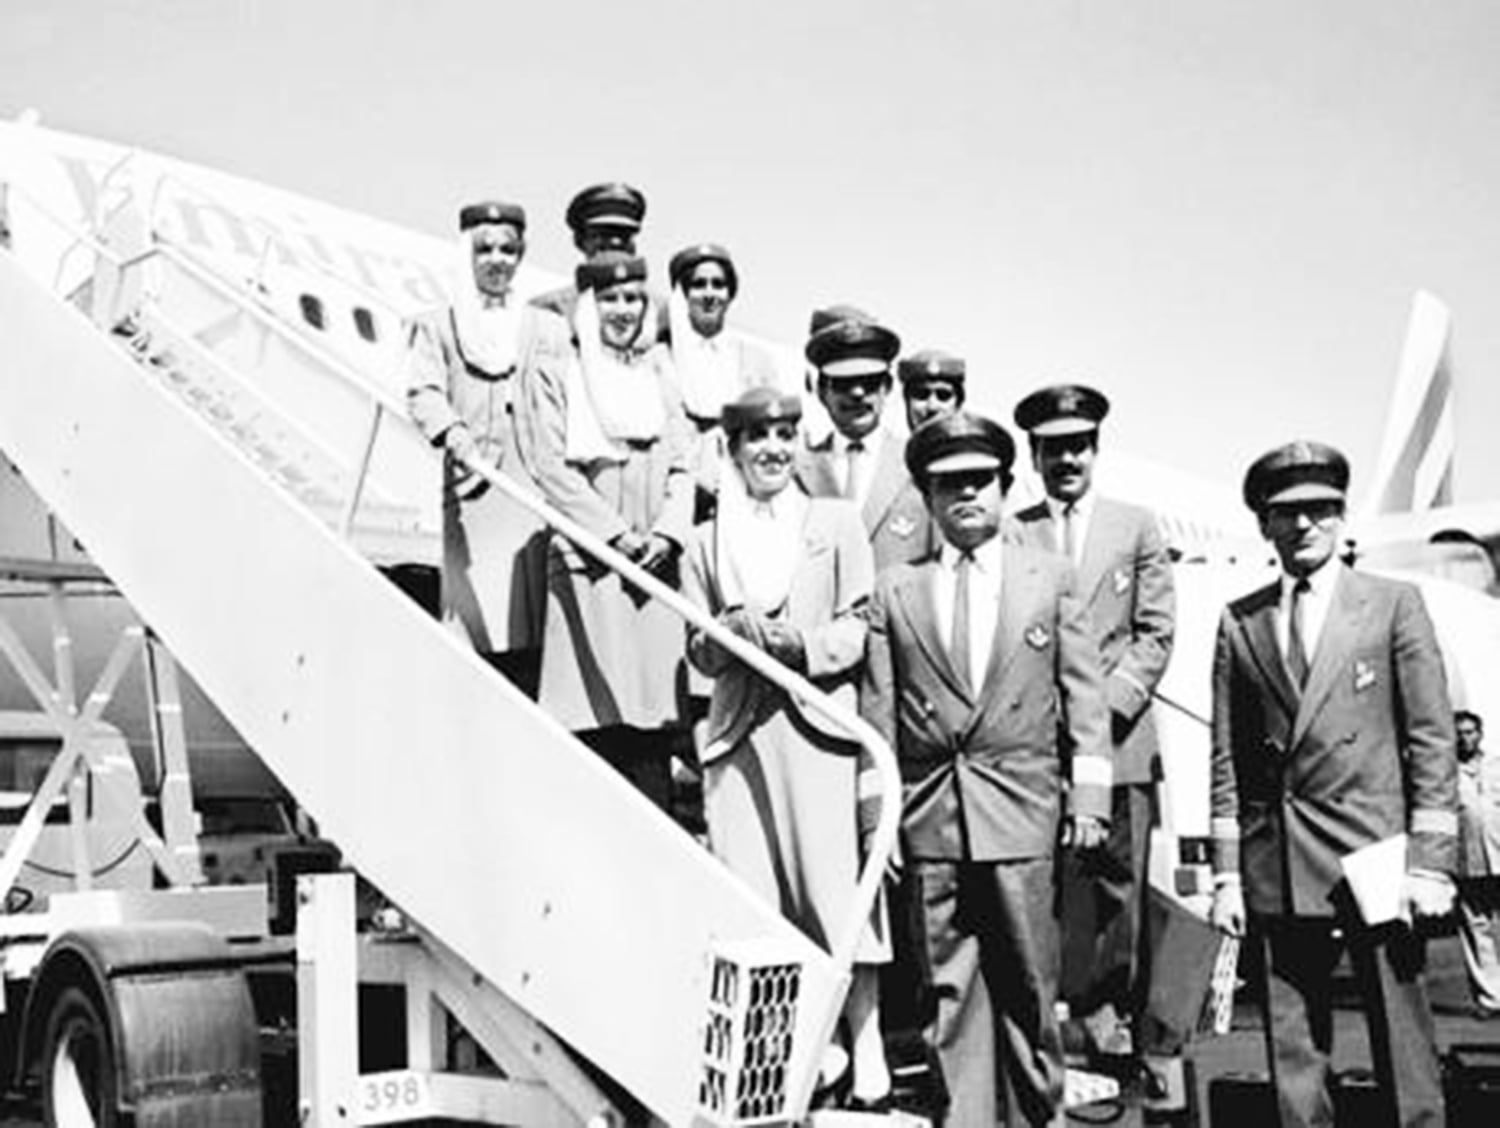 Crew of the first ever Emirates Airline flight to Pakistan in 1985.